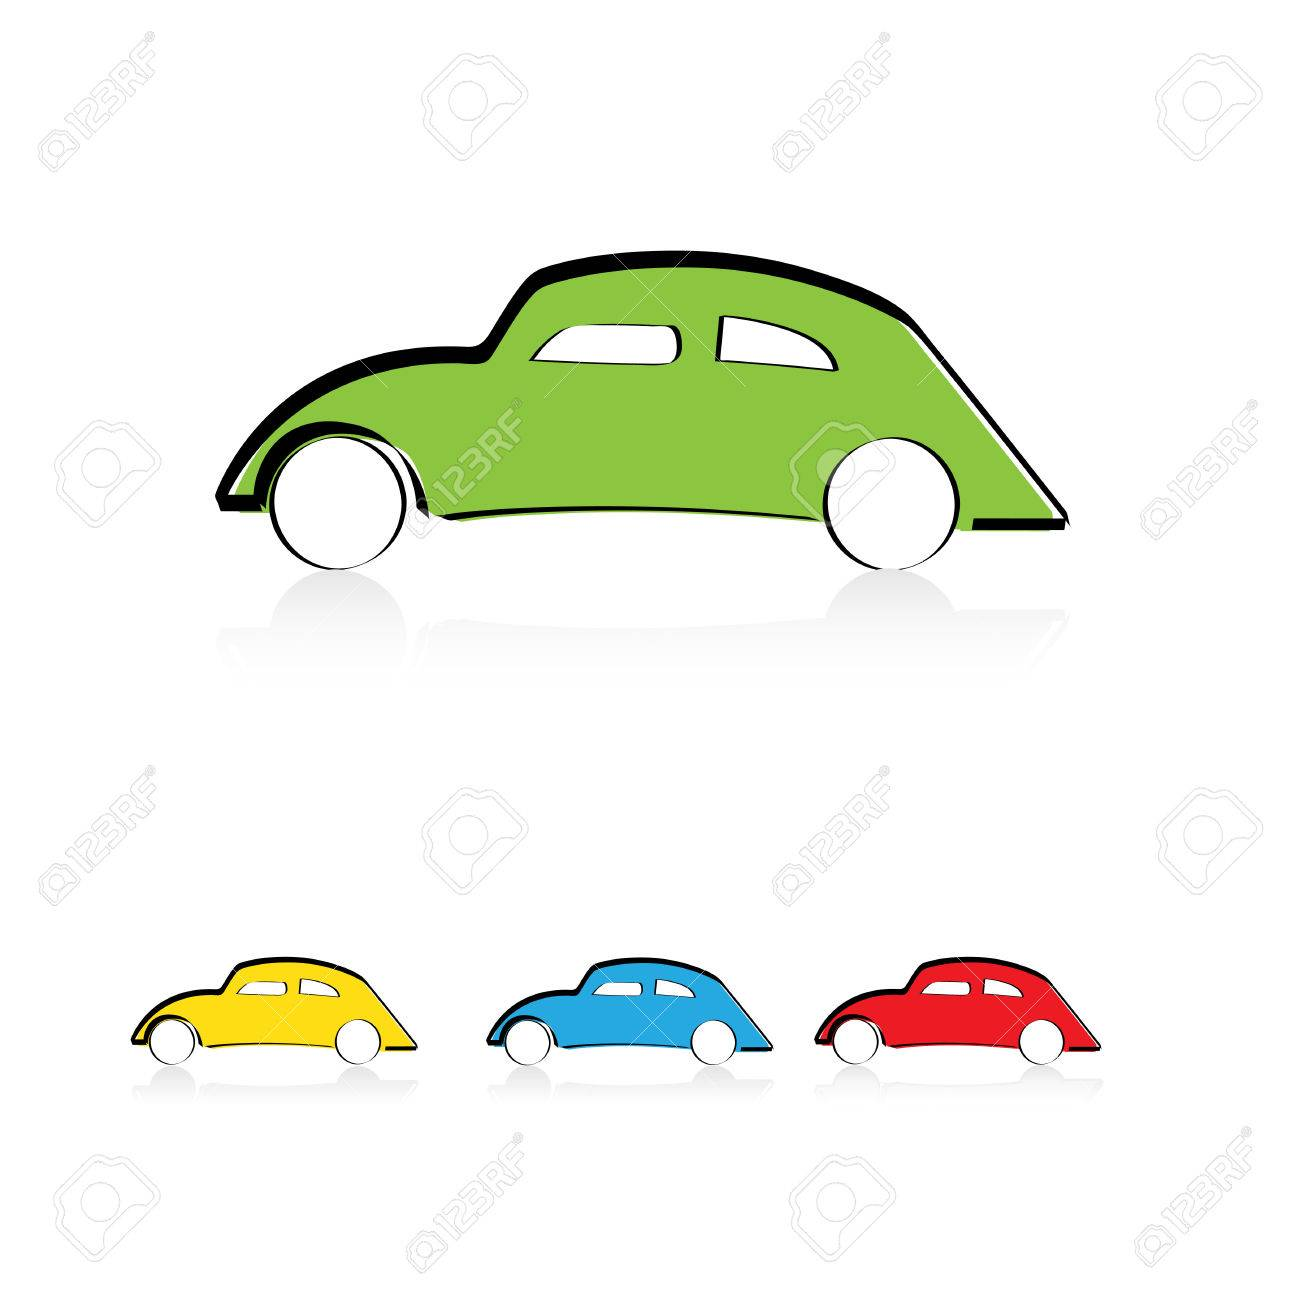 Cute Cartoon Car In Color Green Blue And Red Royalty Free Cliparts